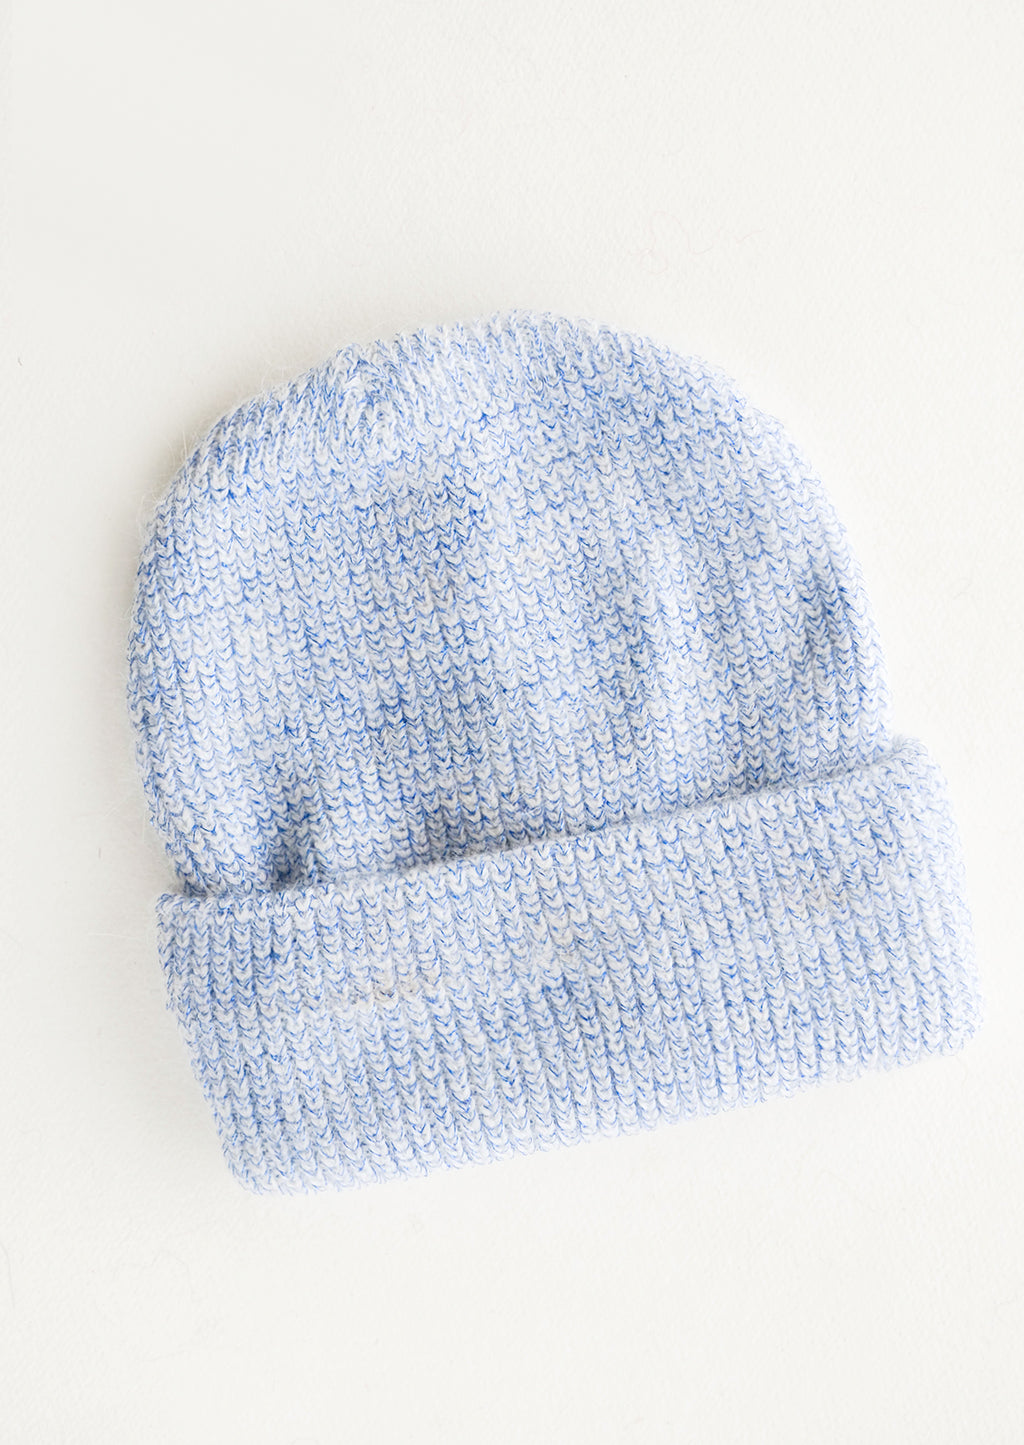 Blue: Blue and white herringbone stitch knit beanie with fold.